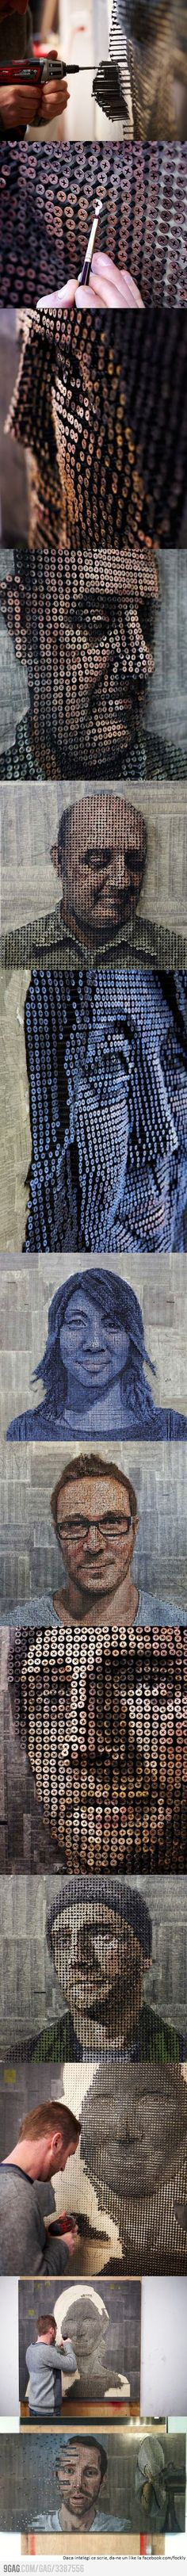 Amazing 3D portraits made out of screws by Andrew Myers.    check out his website...andrewmyersart.com.